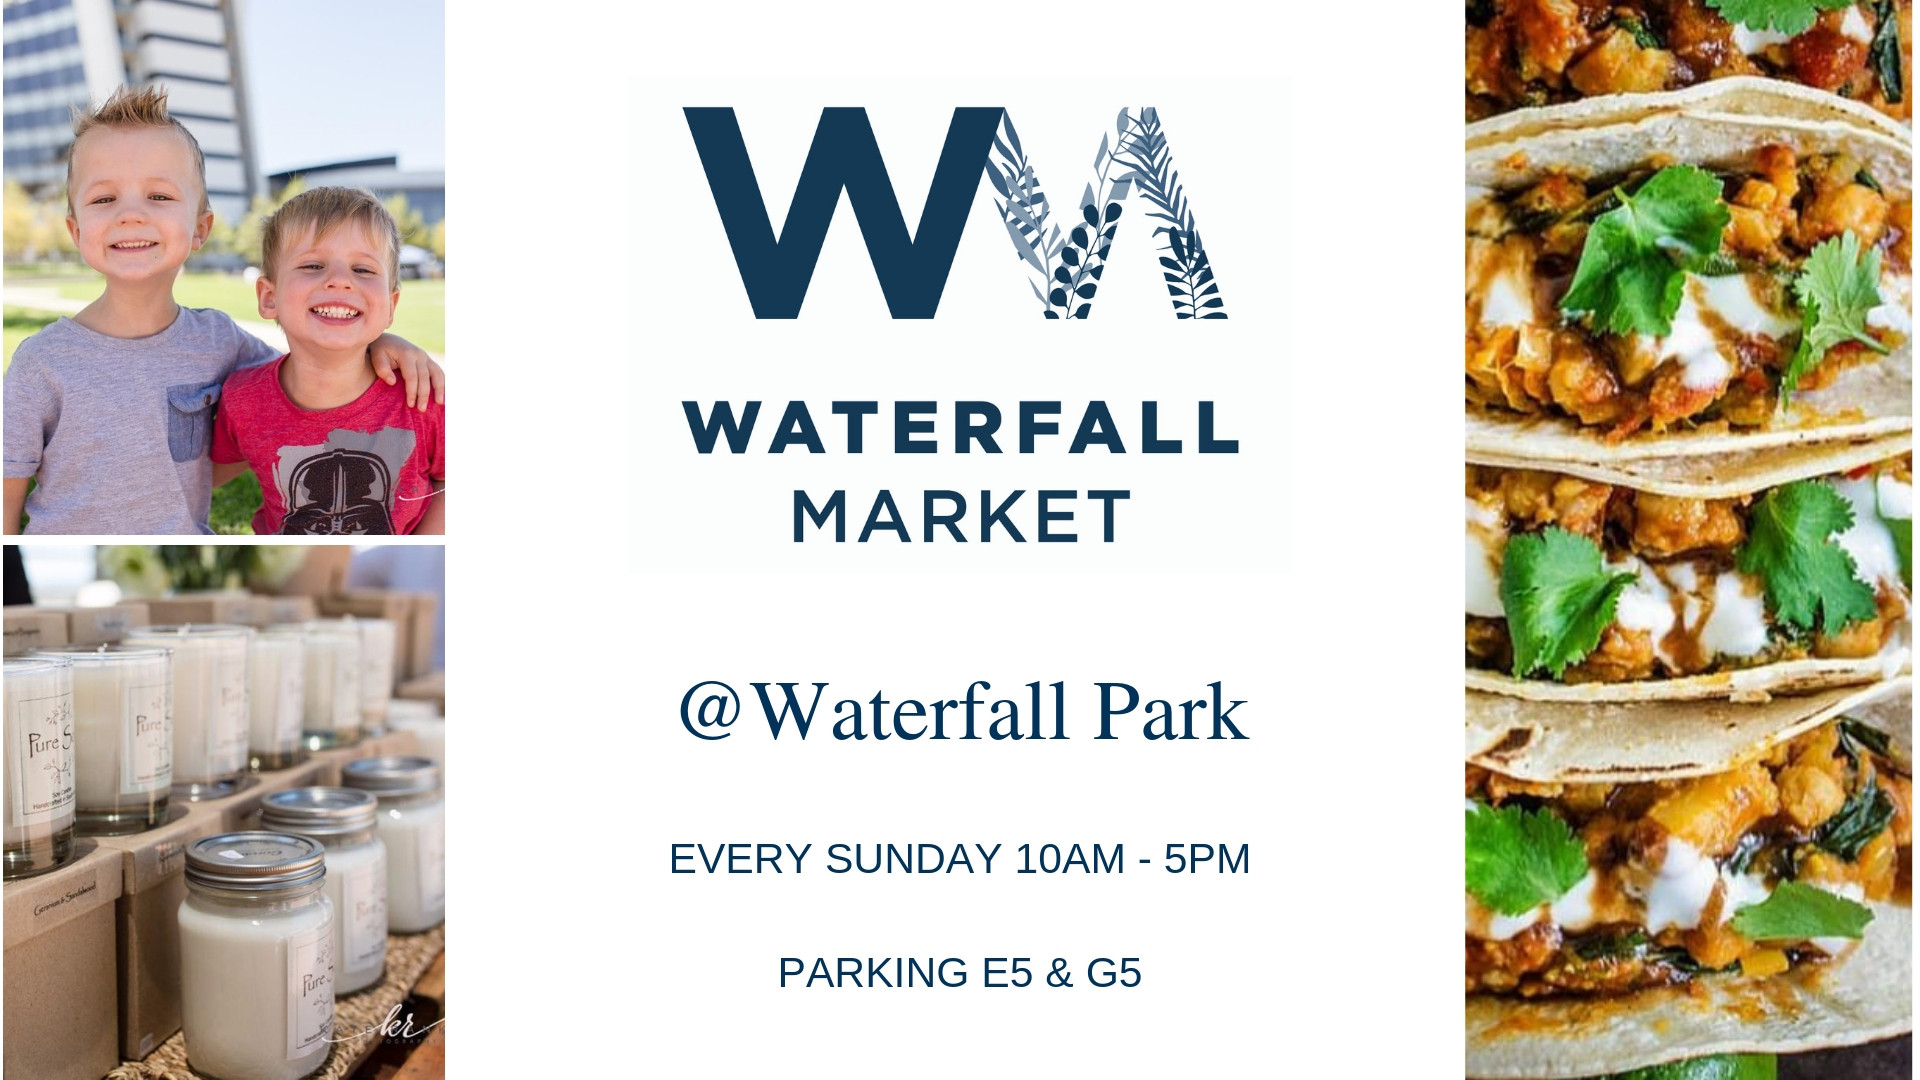 Waterfall Market